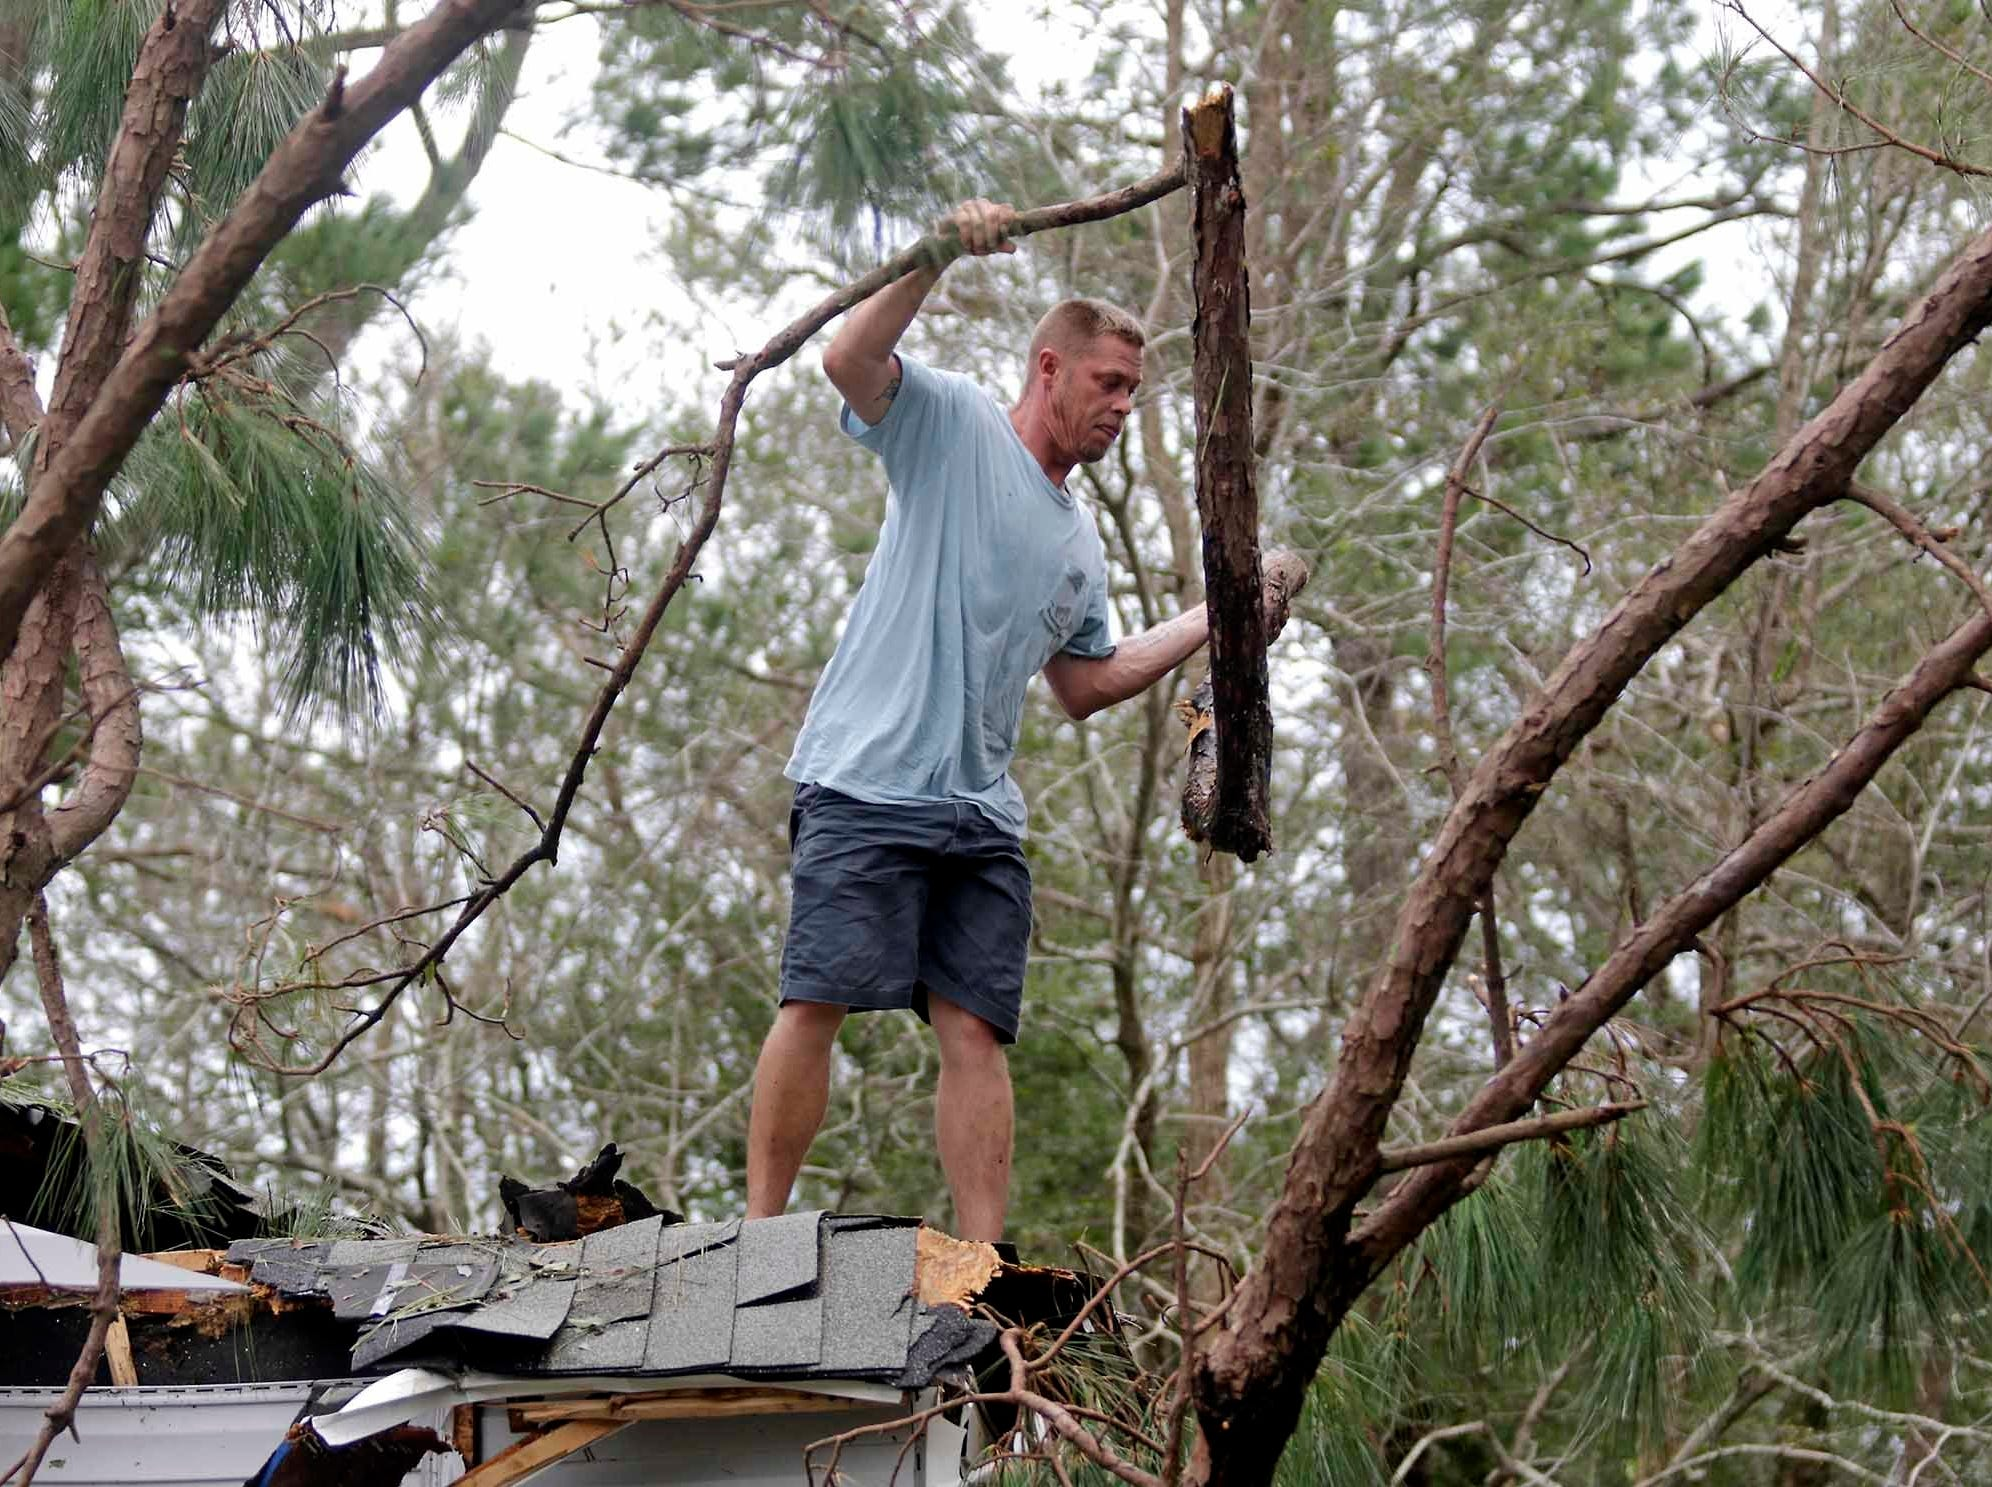 Chris Lishka works to remove a tree from his roof after Hurricane Florence hit Emerald Isle N.C., Sunday, Sept. 16, 2018.